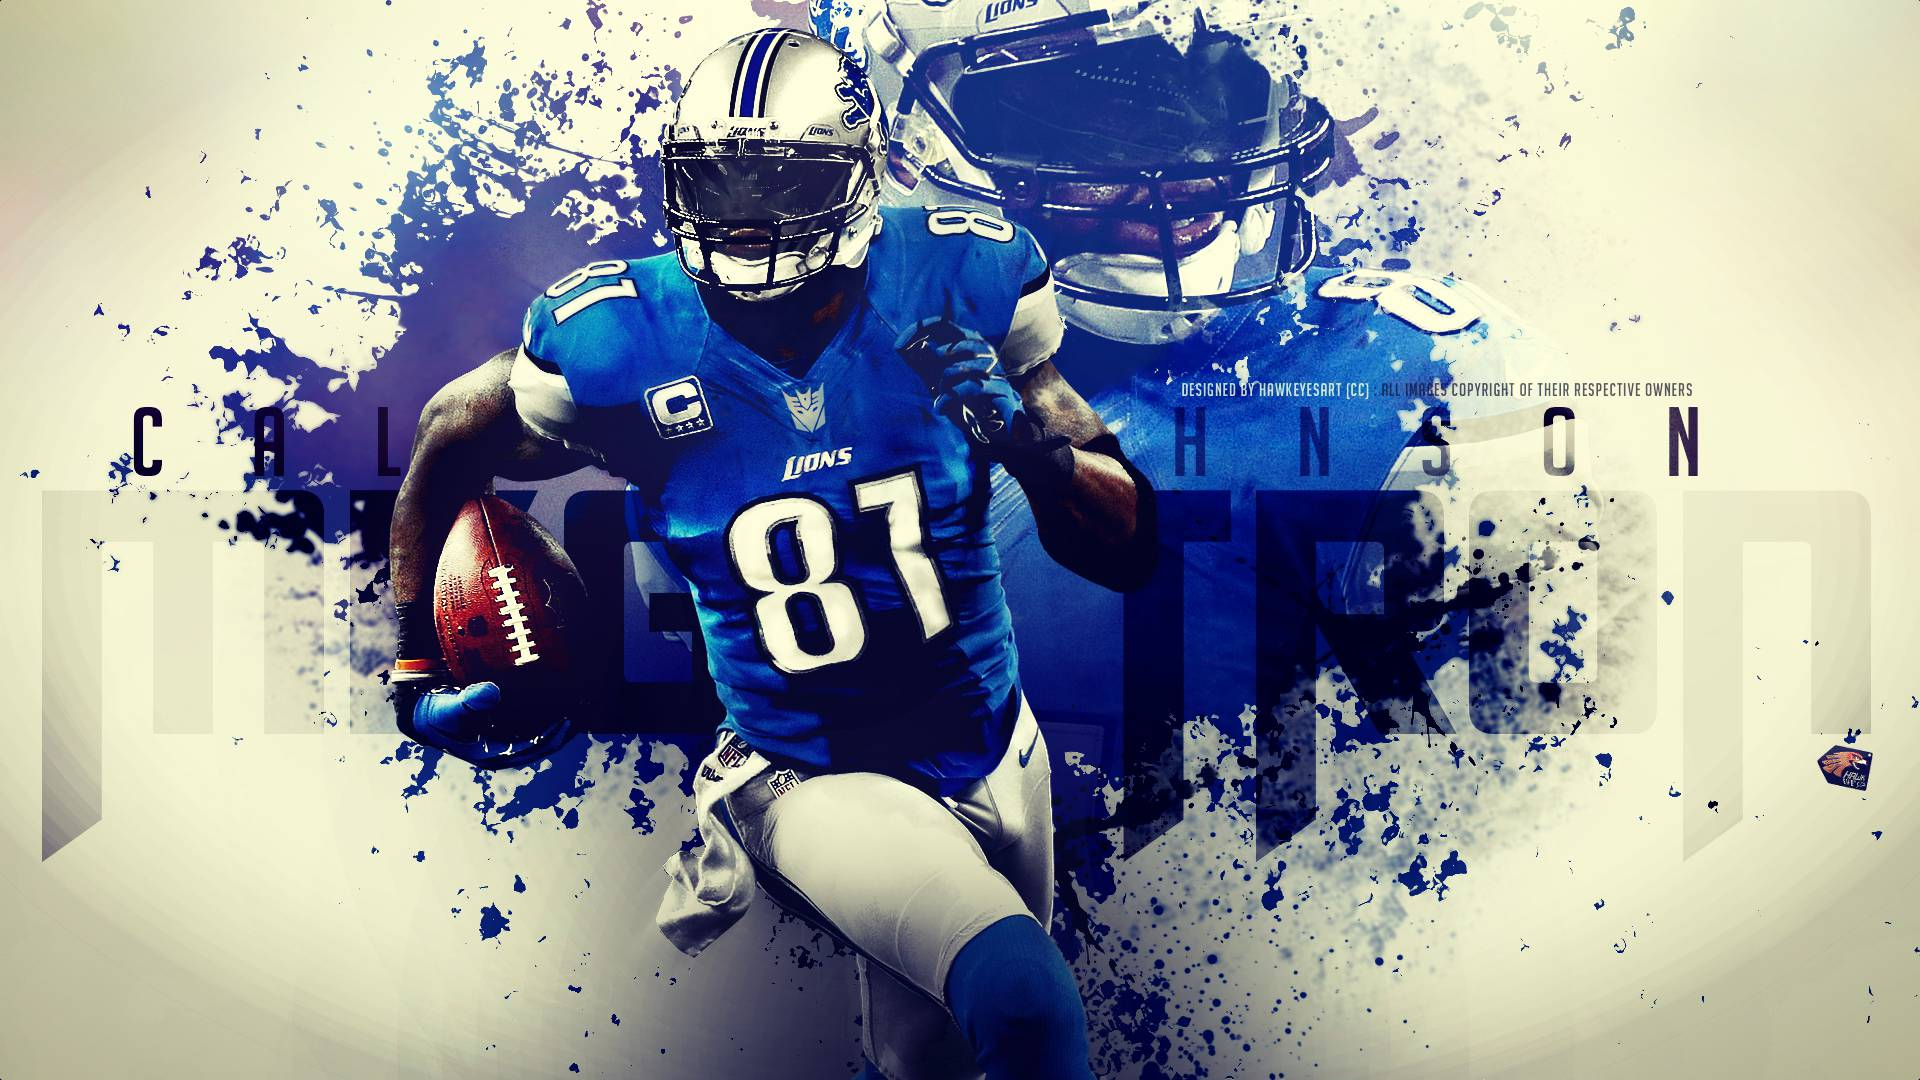 Wicked Iphone Wallpaper Calvin Johnson Wallpapers High Quality Download Free